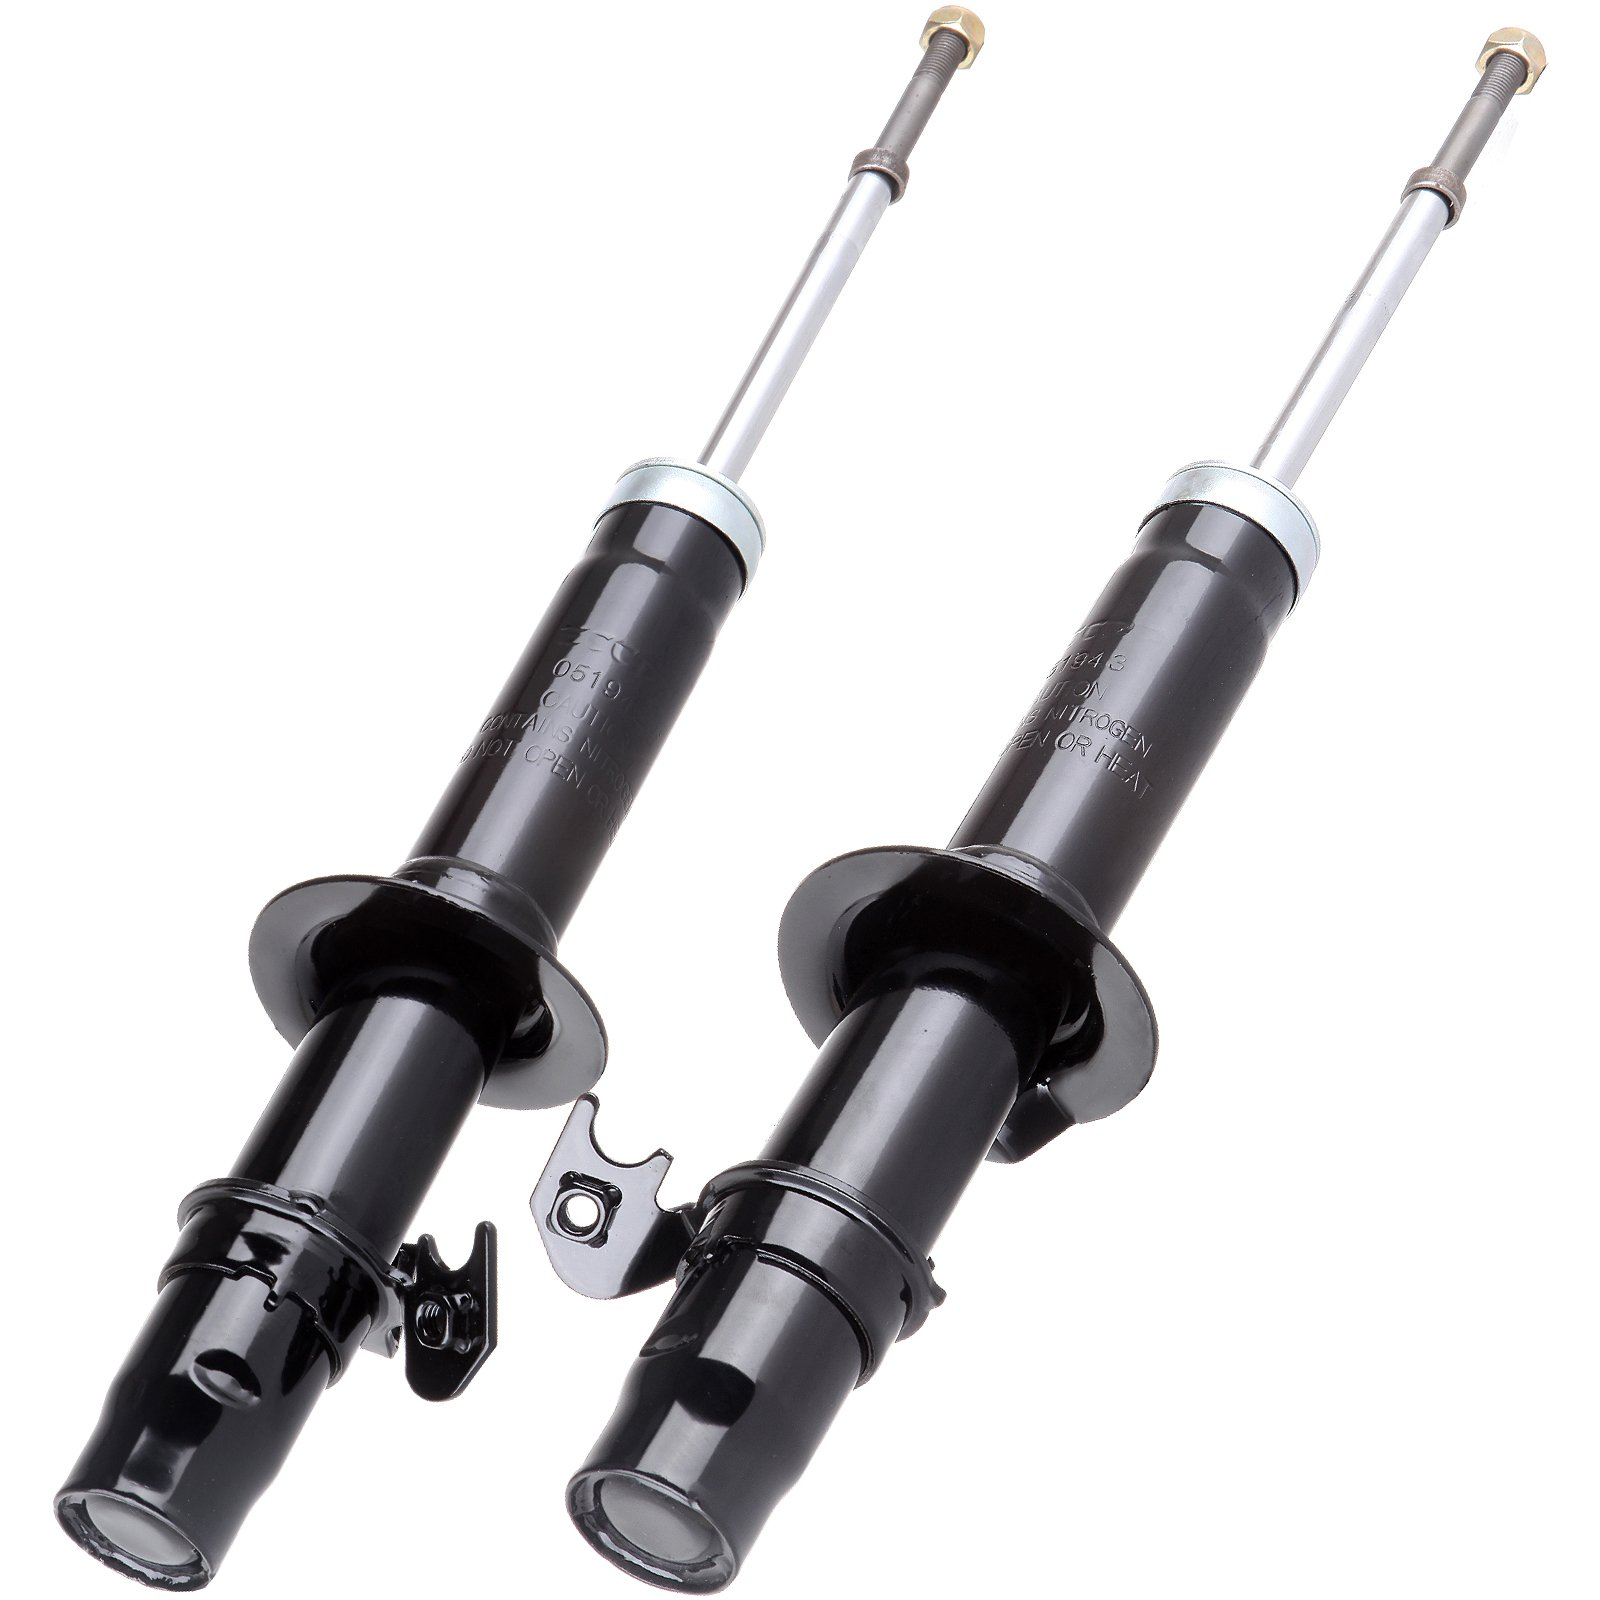 Shocks Absorbers,ECCPP Front Pair Shock Struts Absorbers Kit for 1997 1998 1999 Acura CL,1990-1997 Honda Accord Compatible with 341118 71875 341117 71989